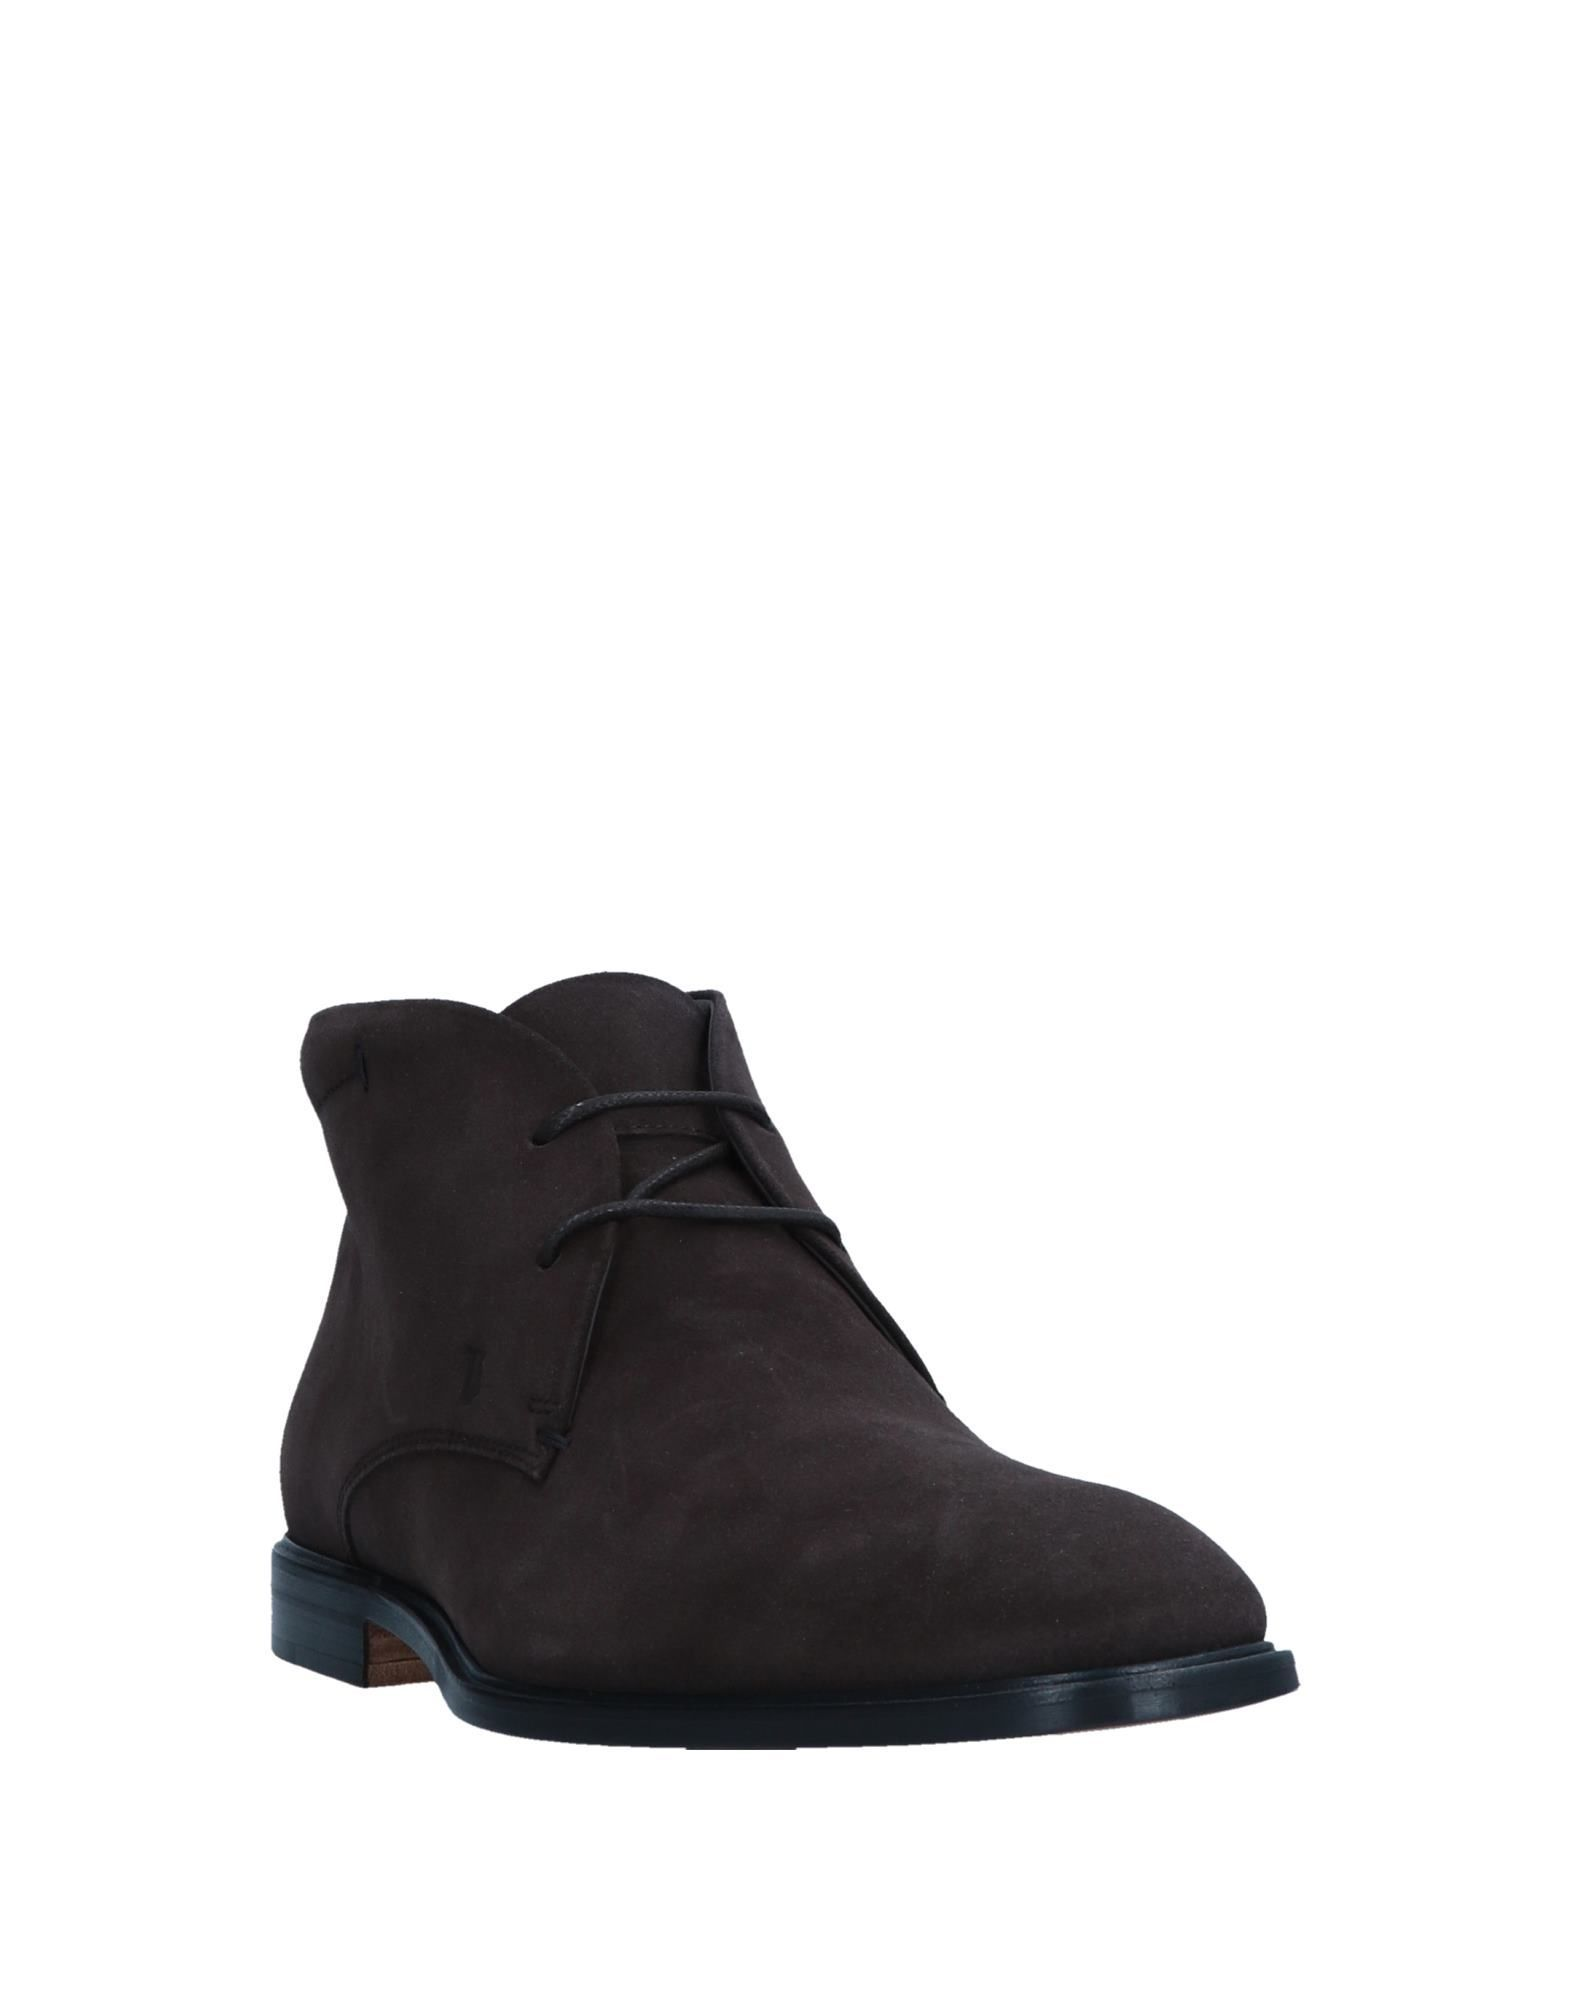 Tod's Dark Brown Leather Ankle Boots